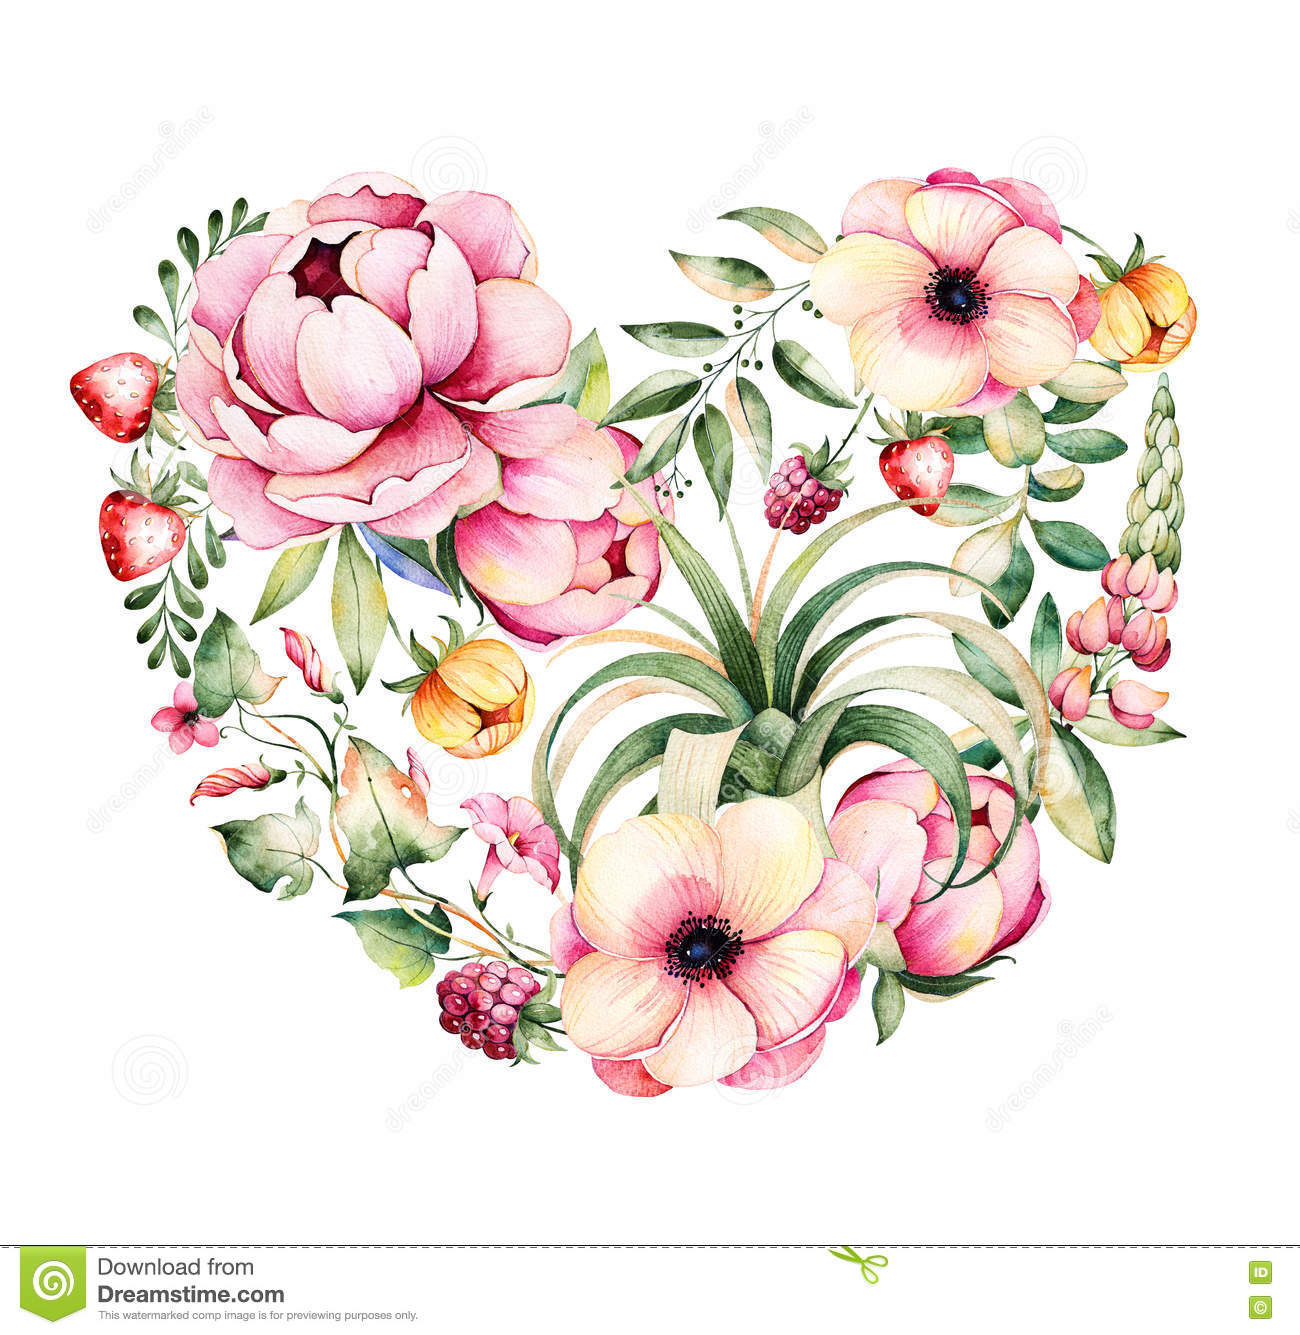 Handpainted illustration.Watercolor heart with peony,field bindweed,branches,lupin,air plant,strawberry